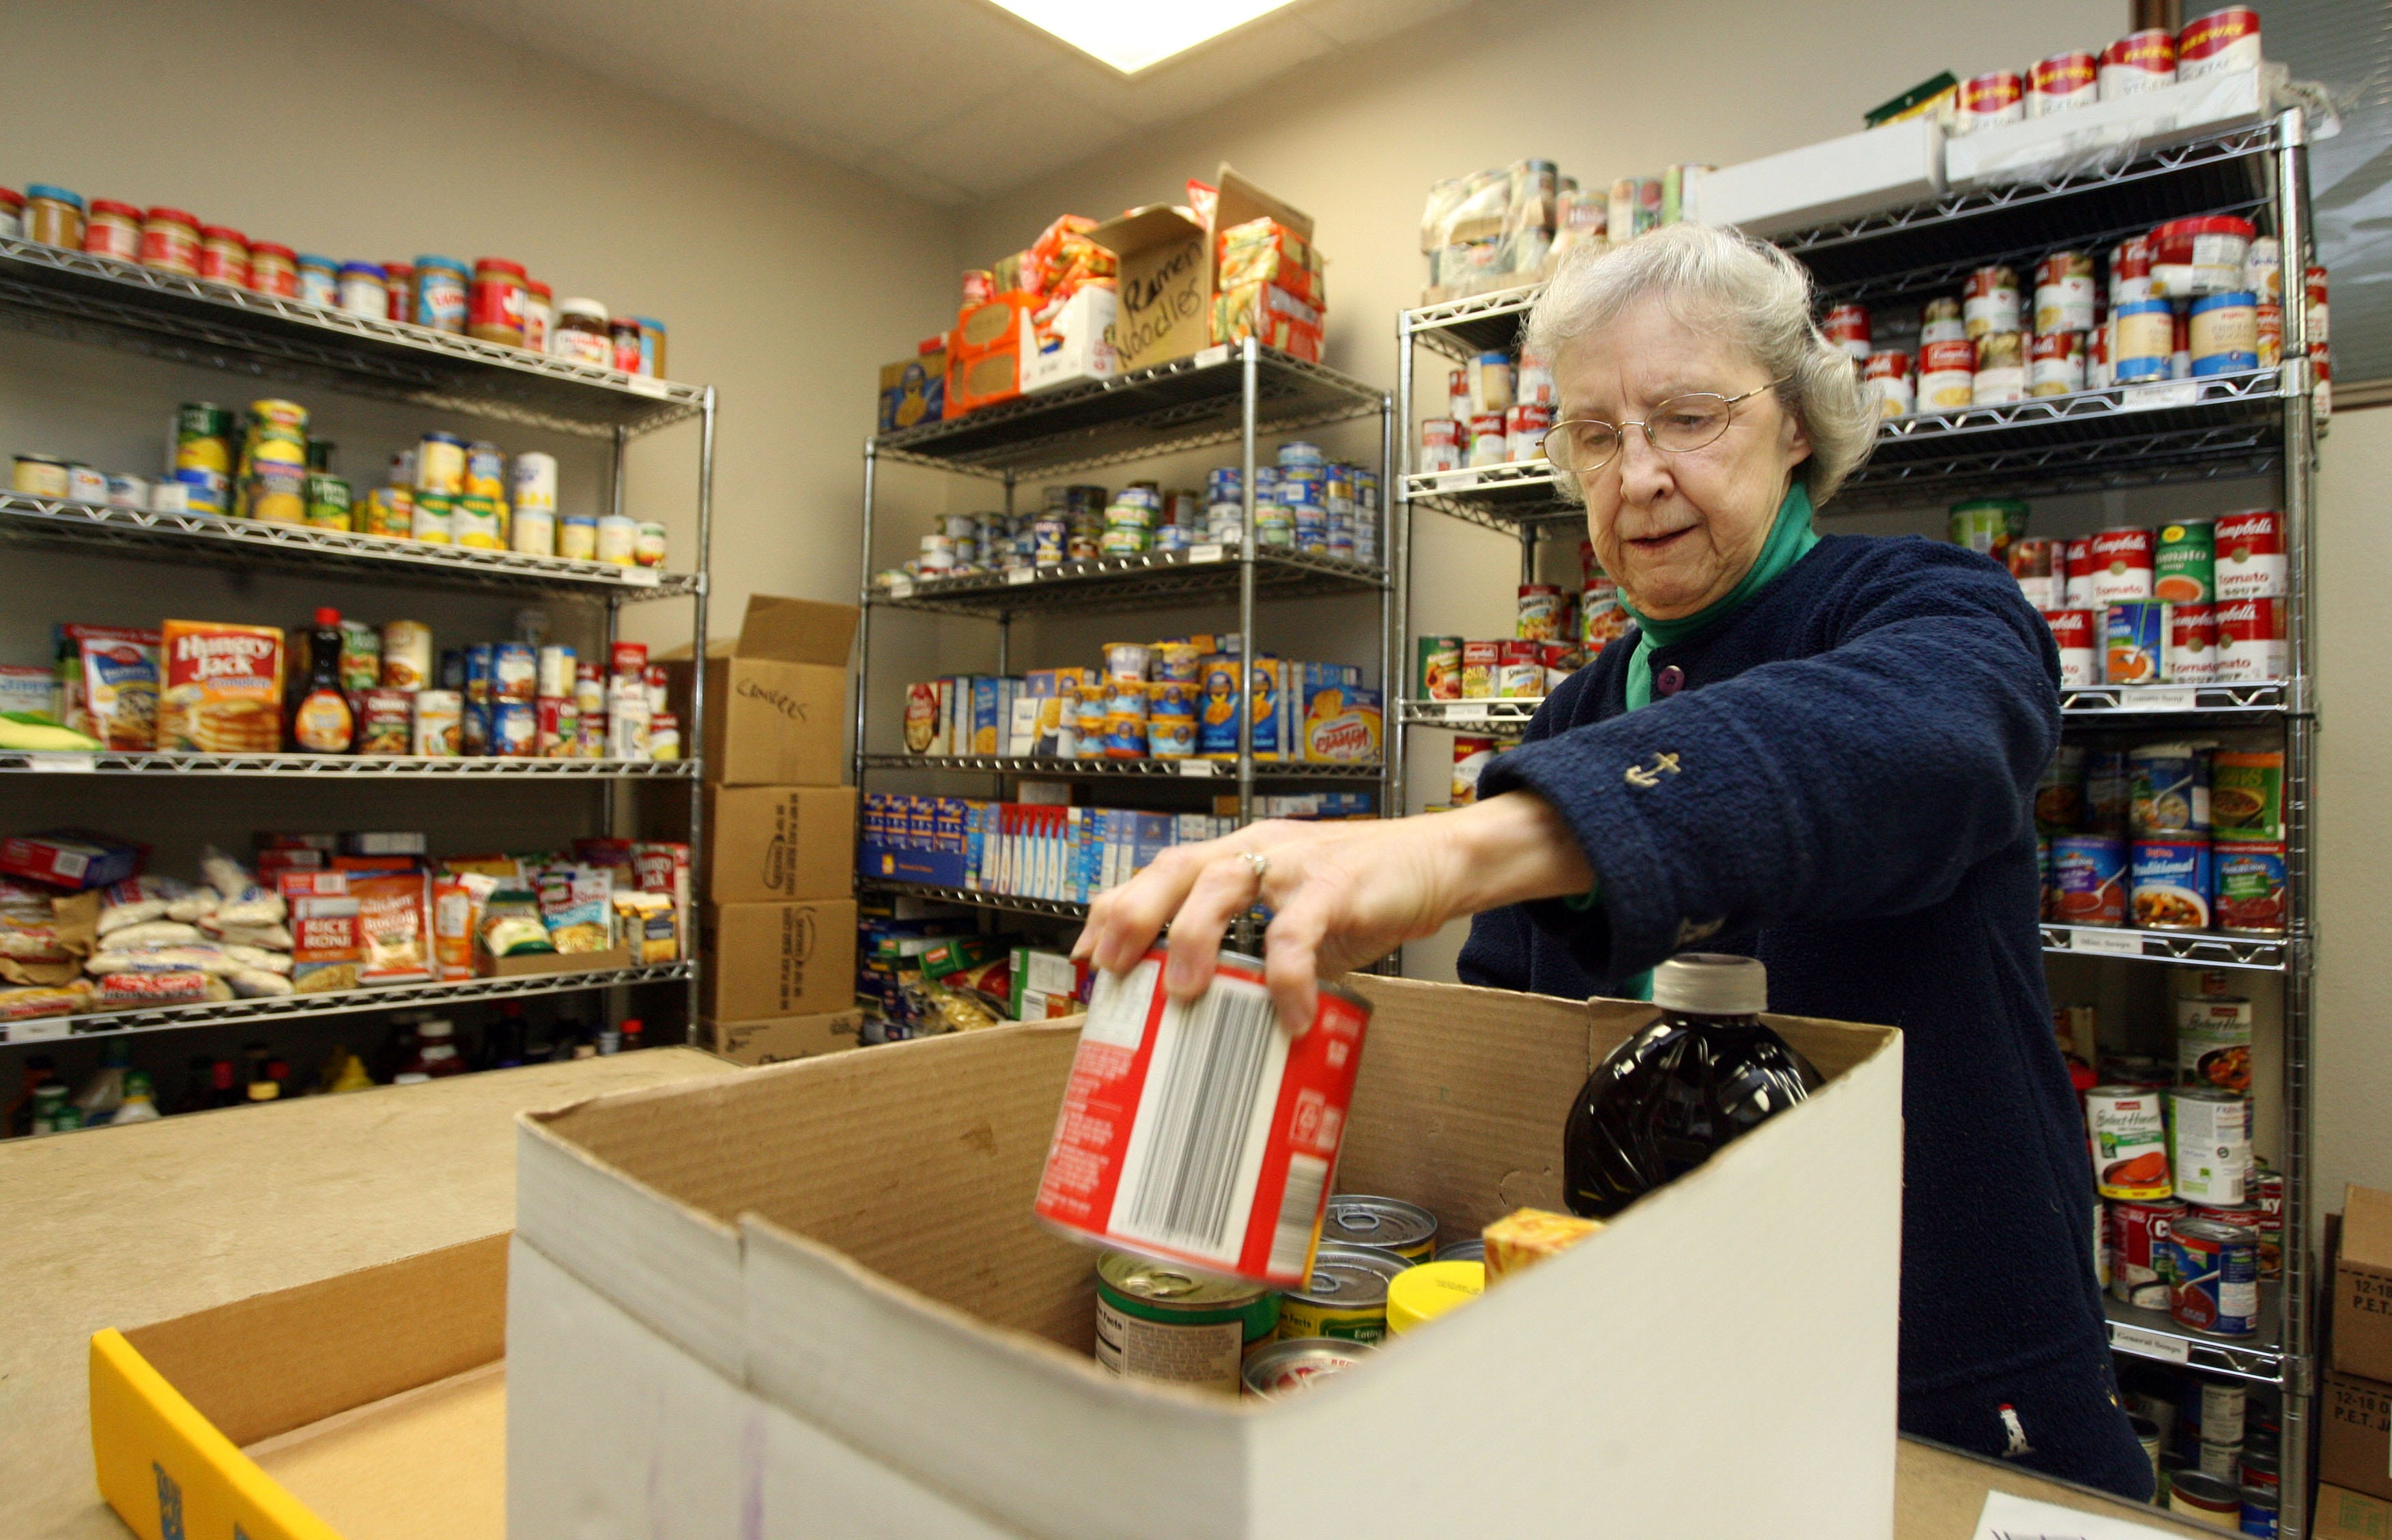 DMARC Donate healthy options to food pantries